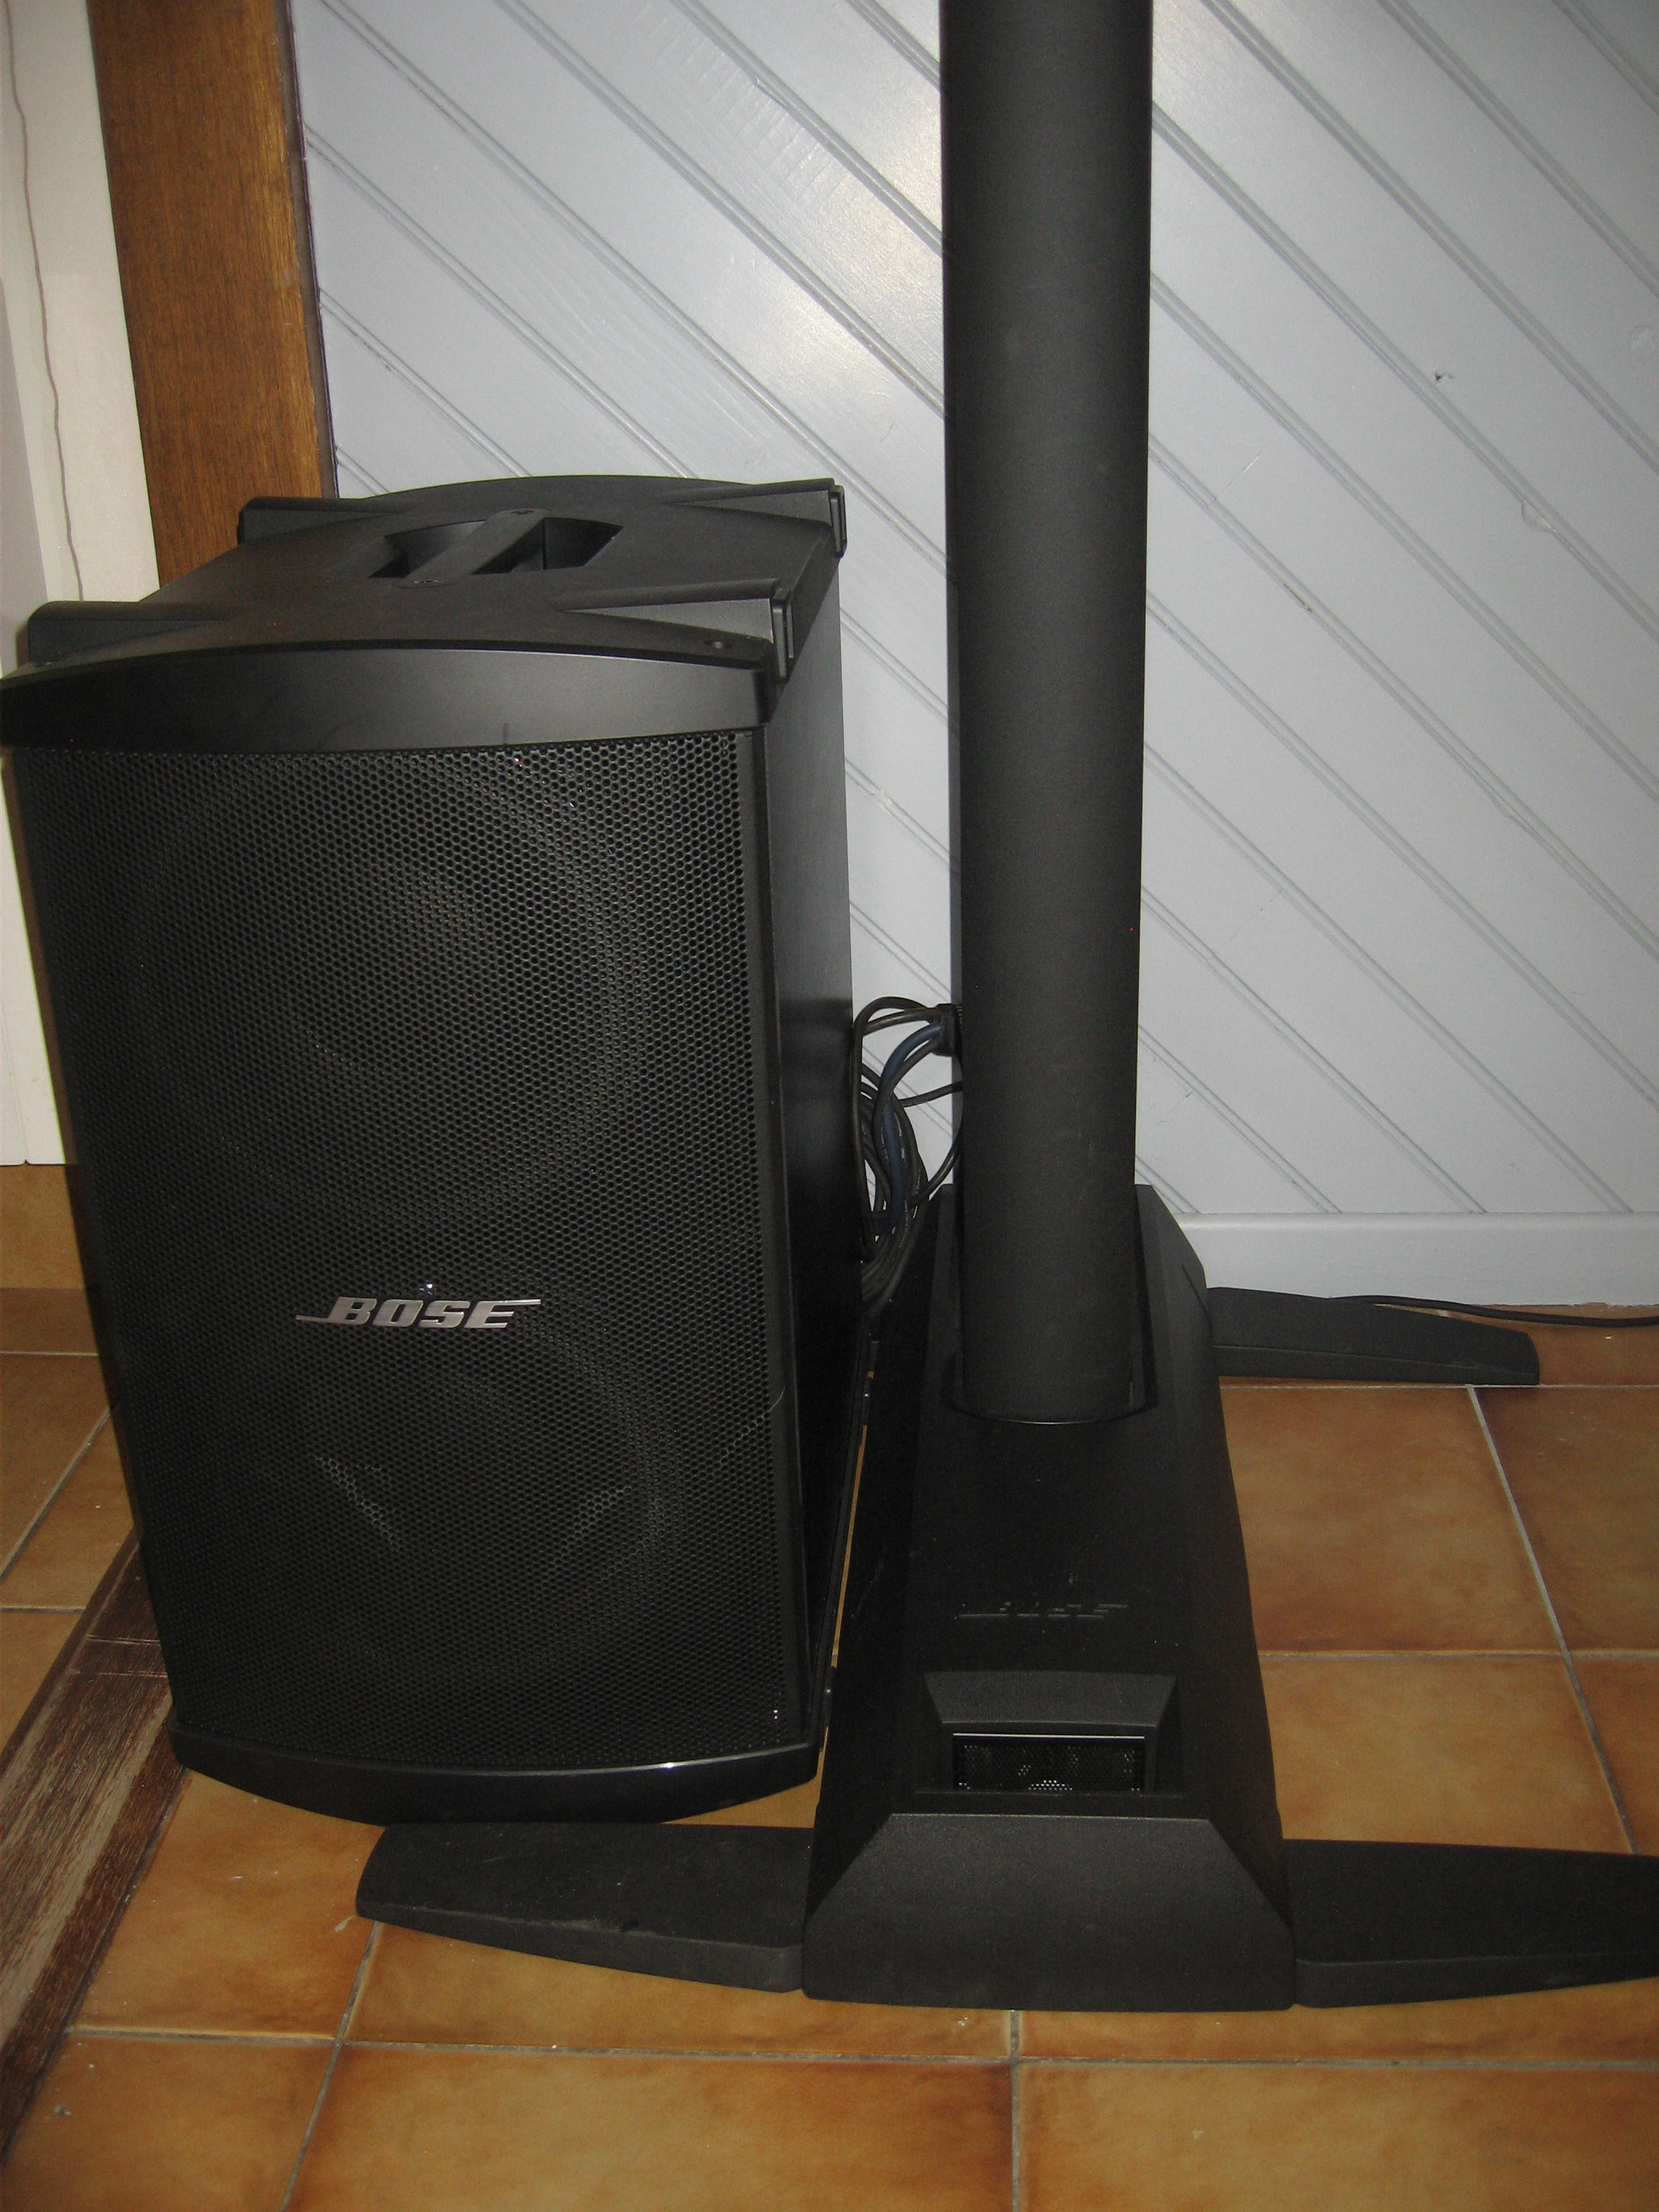 photo bose l1 model 1s with b2 bass bose l1 model 1s with b2 bass 84790 868597 audiofanzine. Black Bedroom Furniture Sets. Home Design Ideas